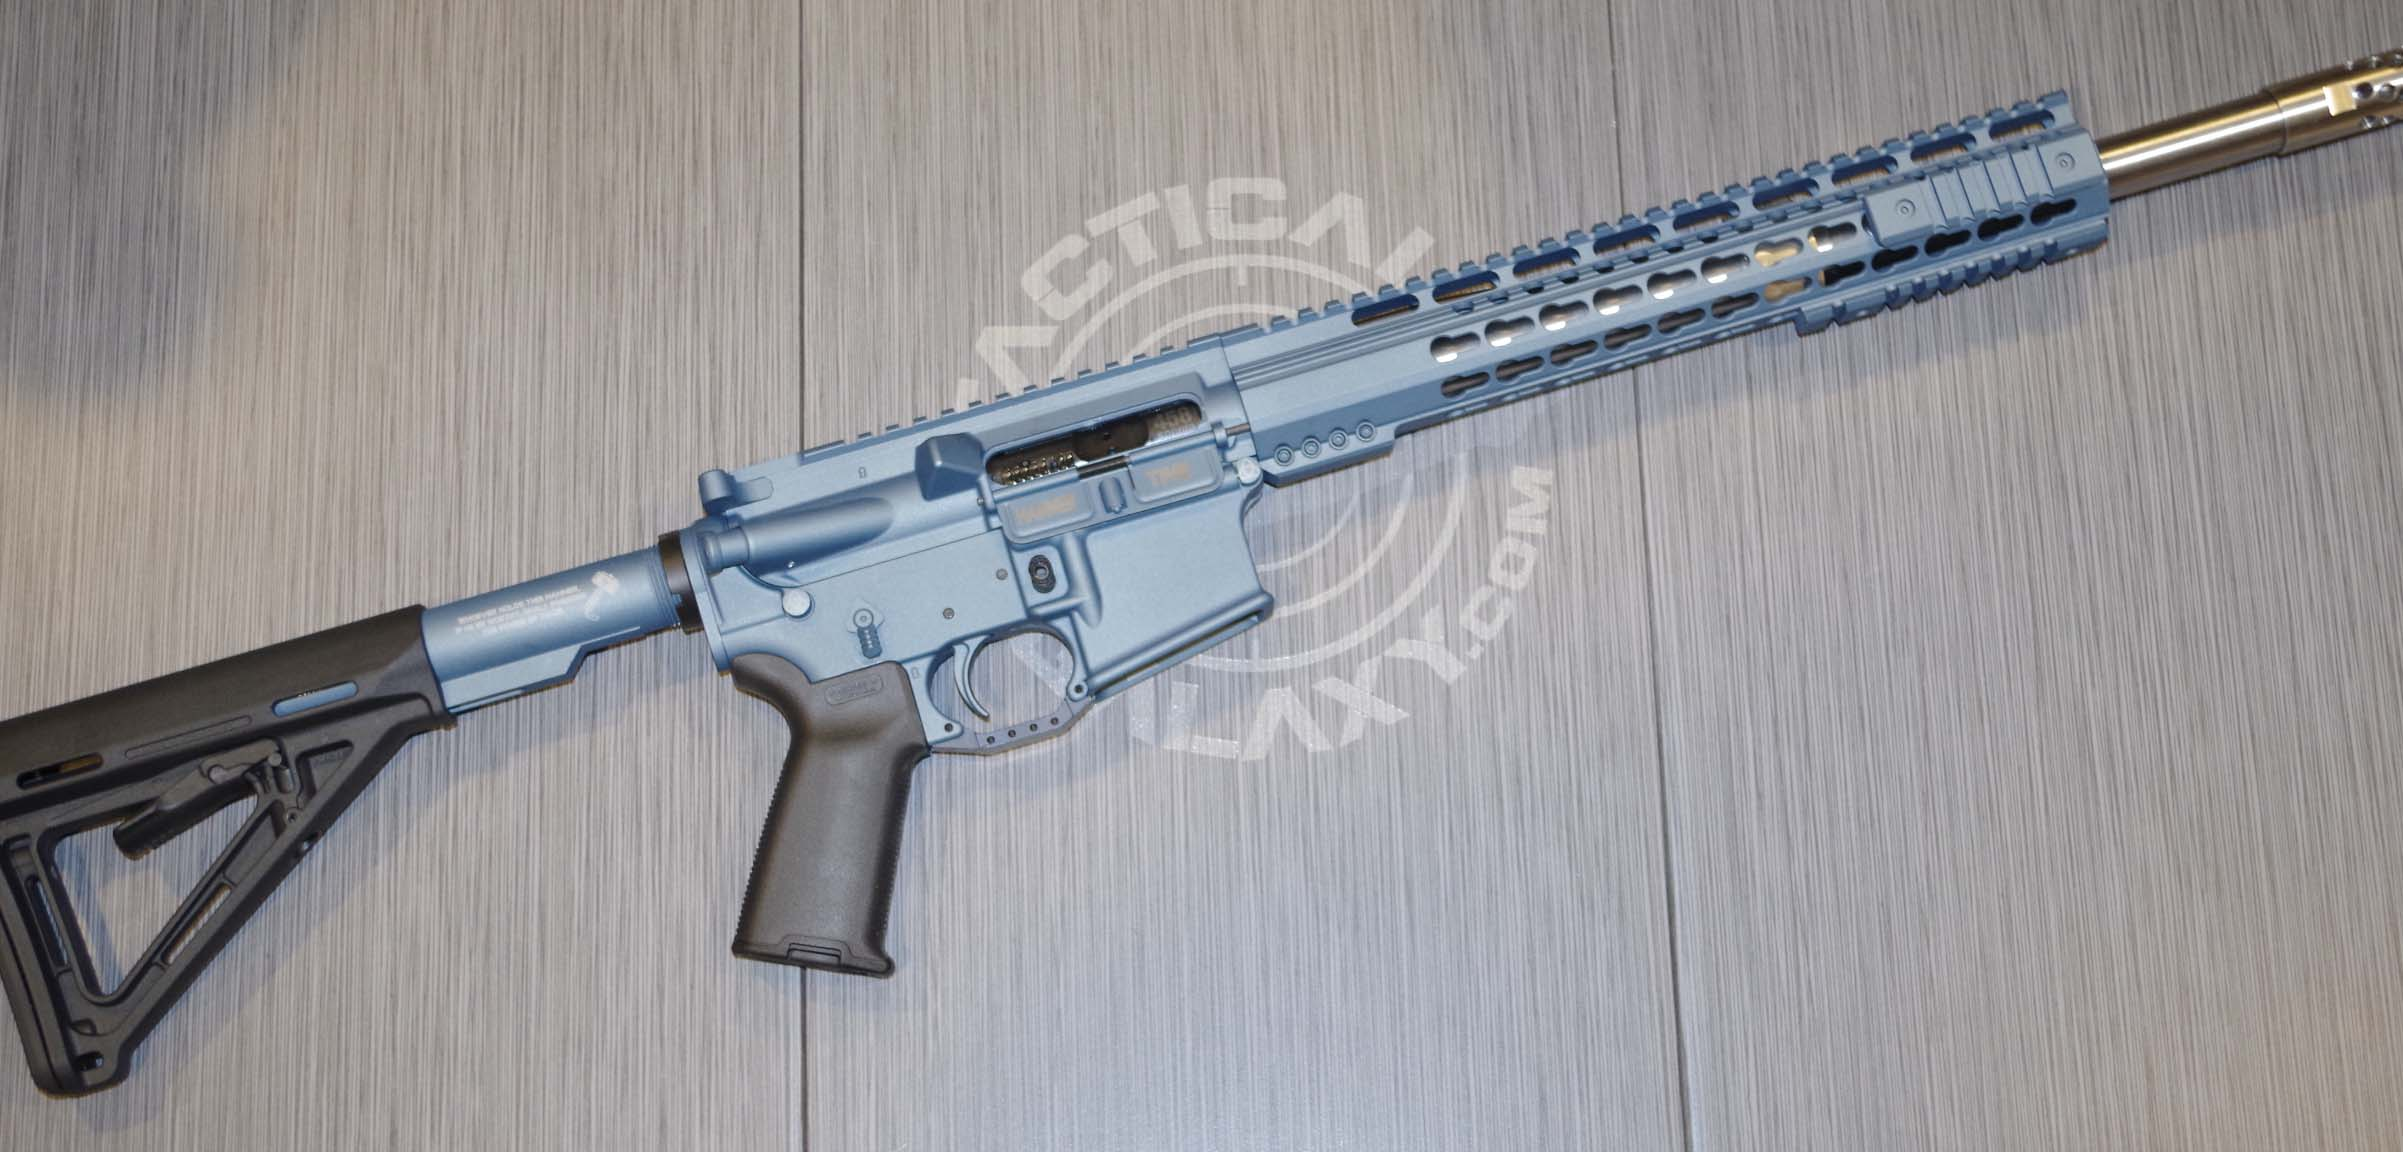 TITANIUM BLUE CERAKOTE AR-15 PARTS